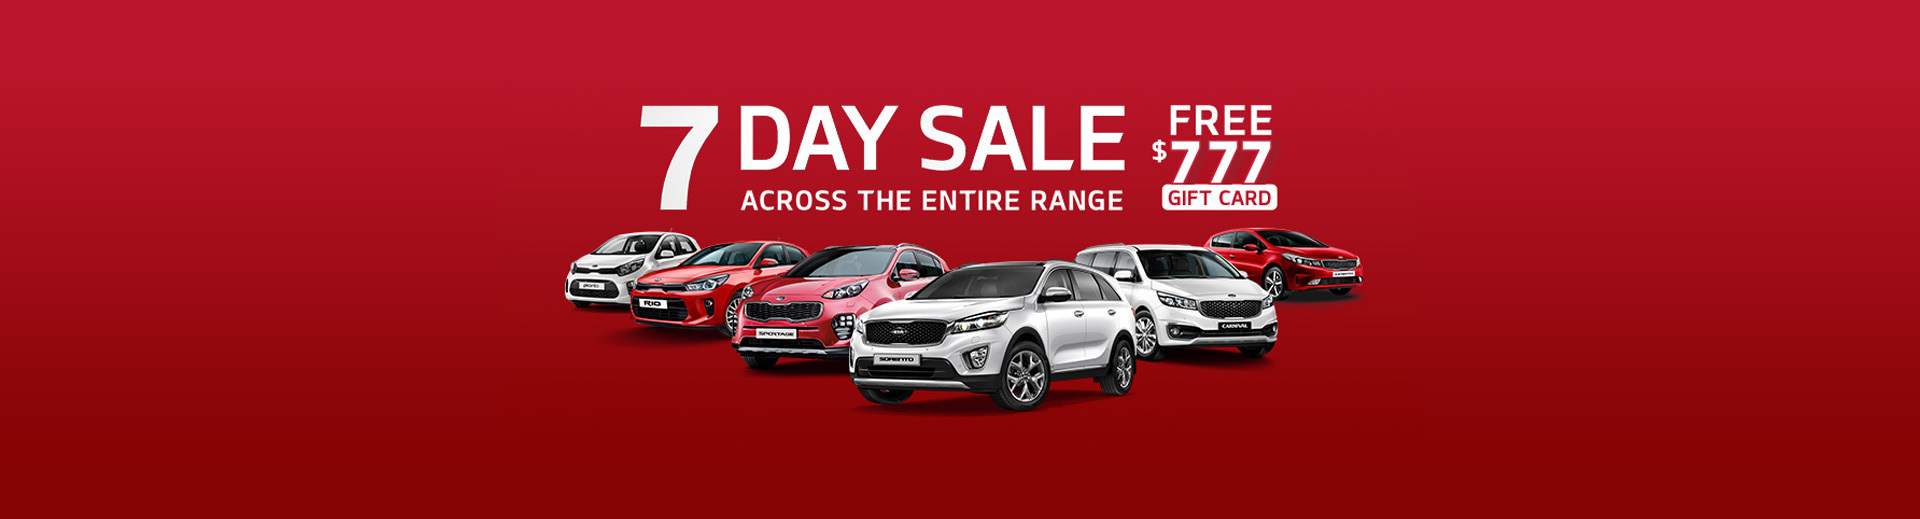 Kia - National Offer - 7 Day Sale